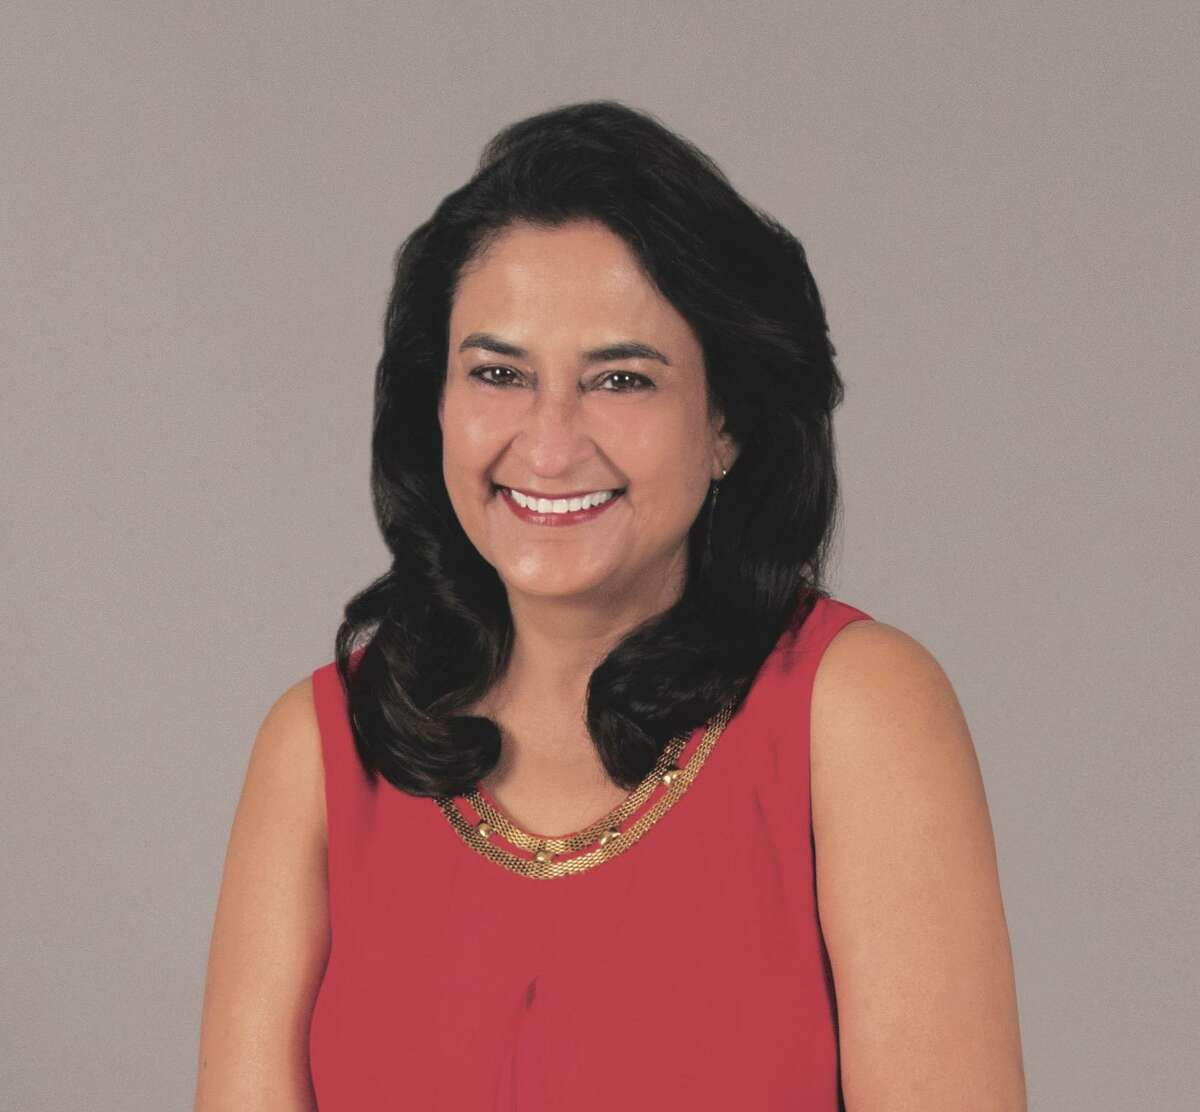 Rashmi Gupta, a 22-year resident of The Woodlands, finished second in the Position 5 race for the township's Board of Directors. Gupta, a local real estate agent, nabbed second place with 4,230 votes.